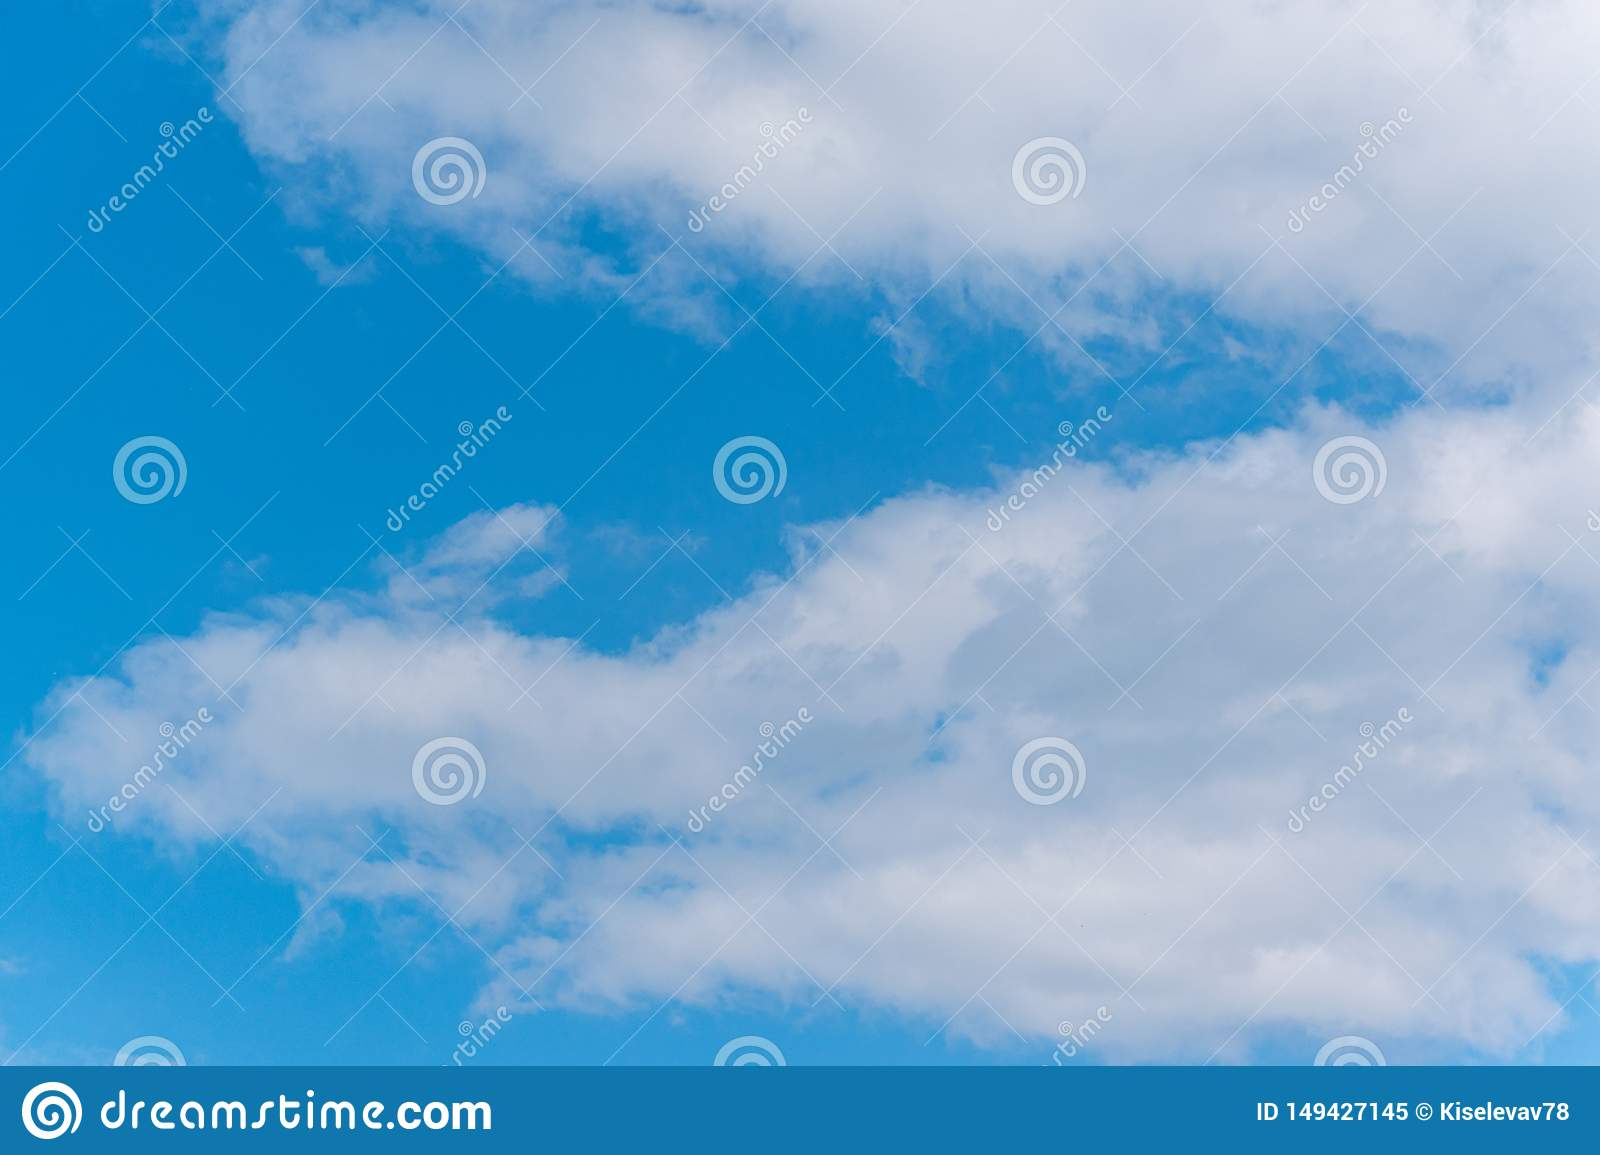 Blue sky with fluffy clouds. Natural landscape. Spring nature scene